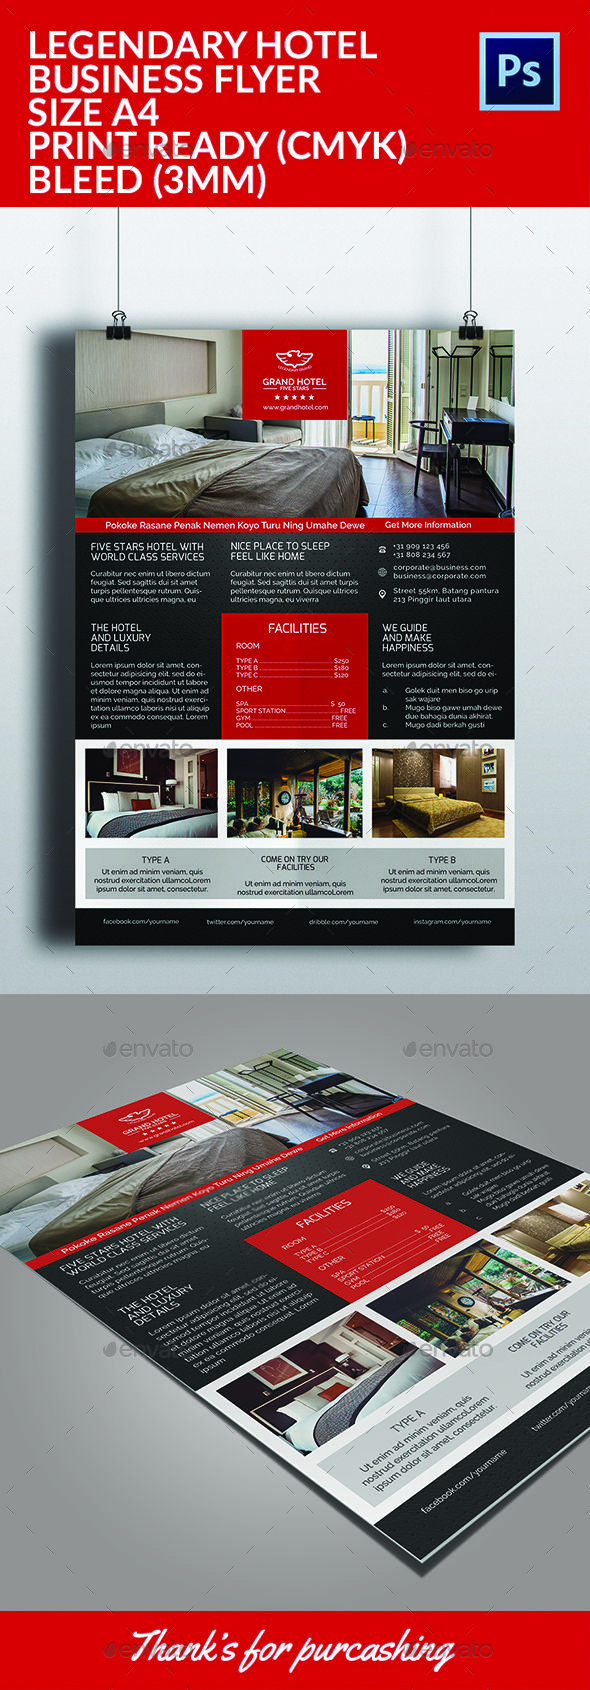 Legendary Hotel Flyer Template | Flyer template, Template and ...